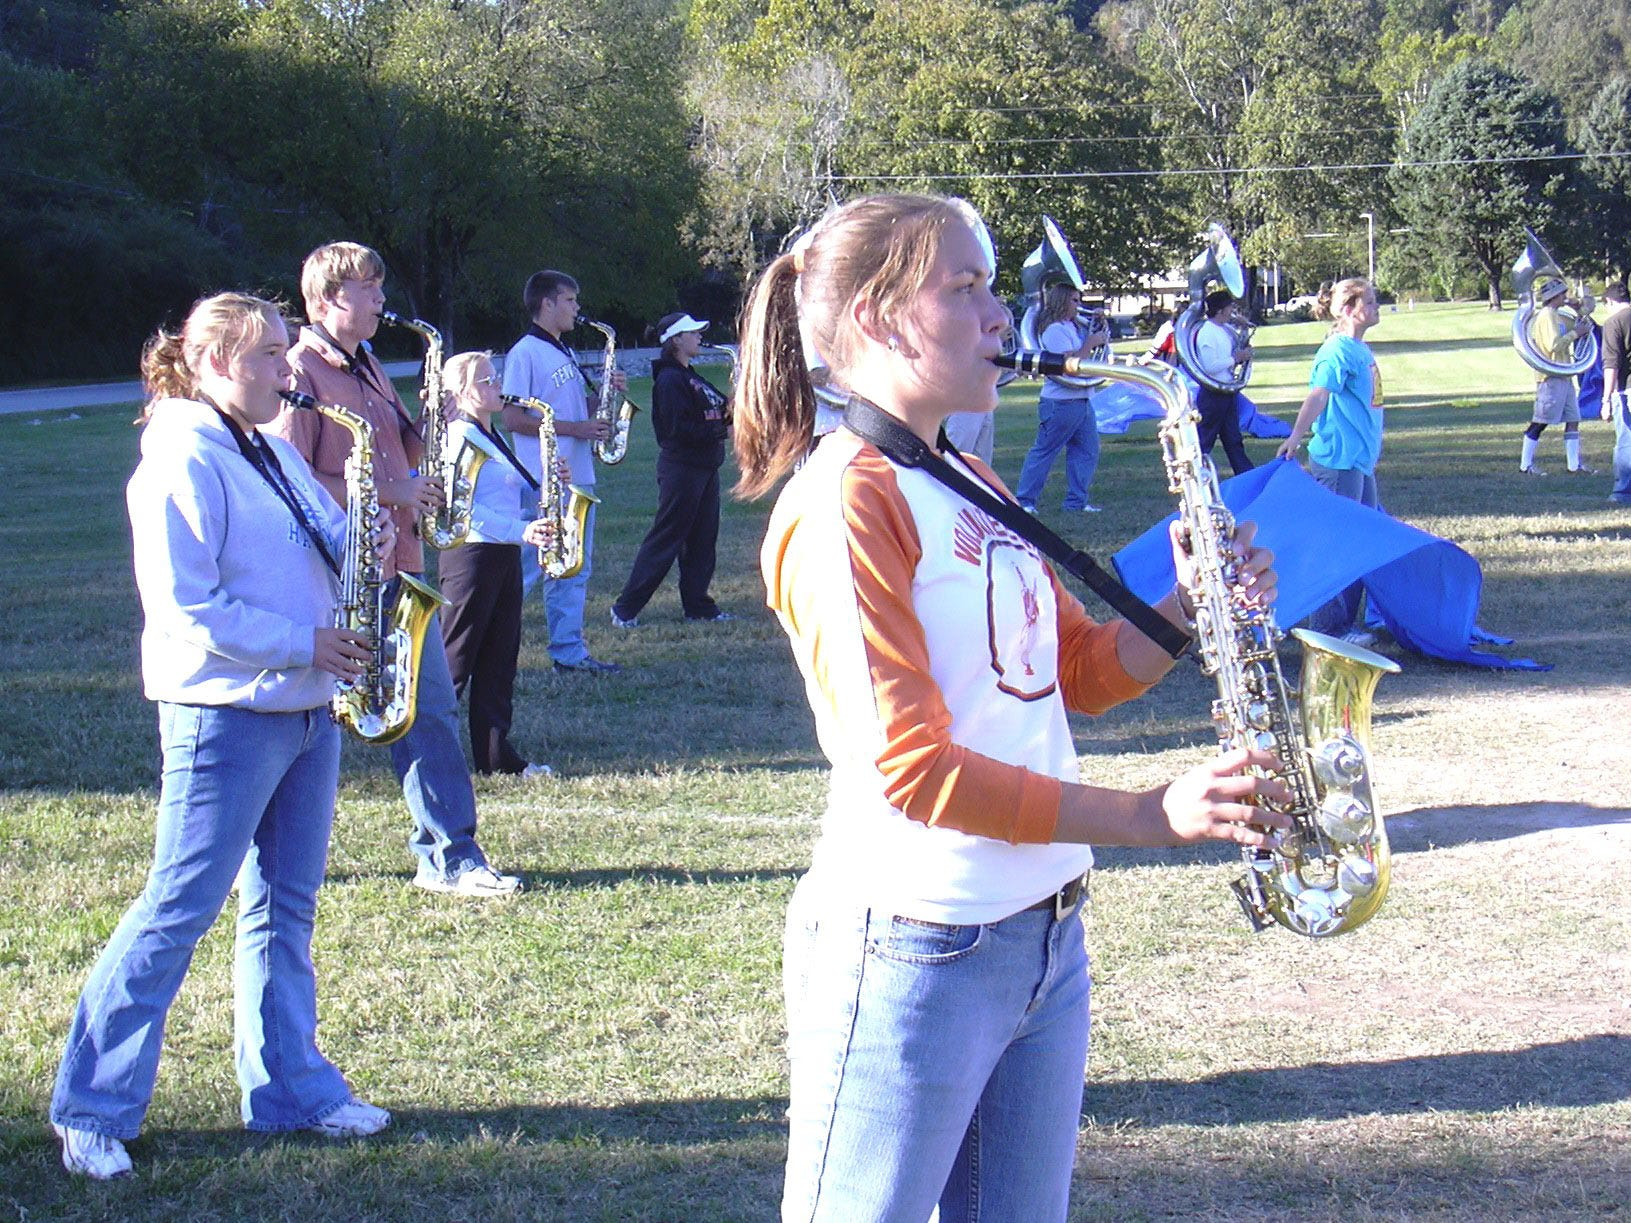 Anna Baker, foreground, plays the saxophone while participating in drills in preparation for the latest halftime show by members of the Clinton High School Marching Band. In back, from left: Rachel Stonecipher, Cory Glen, Melissa Gingery, Brian Long and Kelly Coffman. Twirling the flags at right is Jill Ferrie.